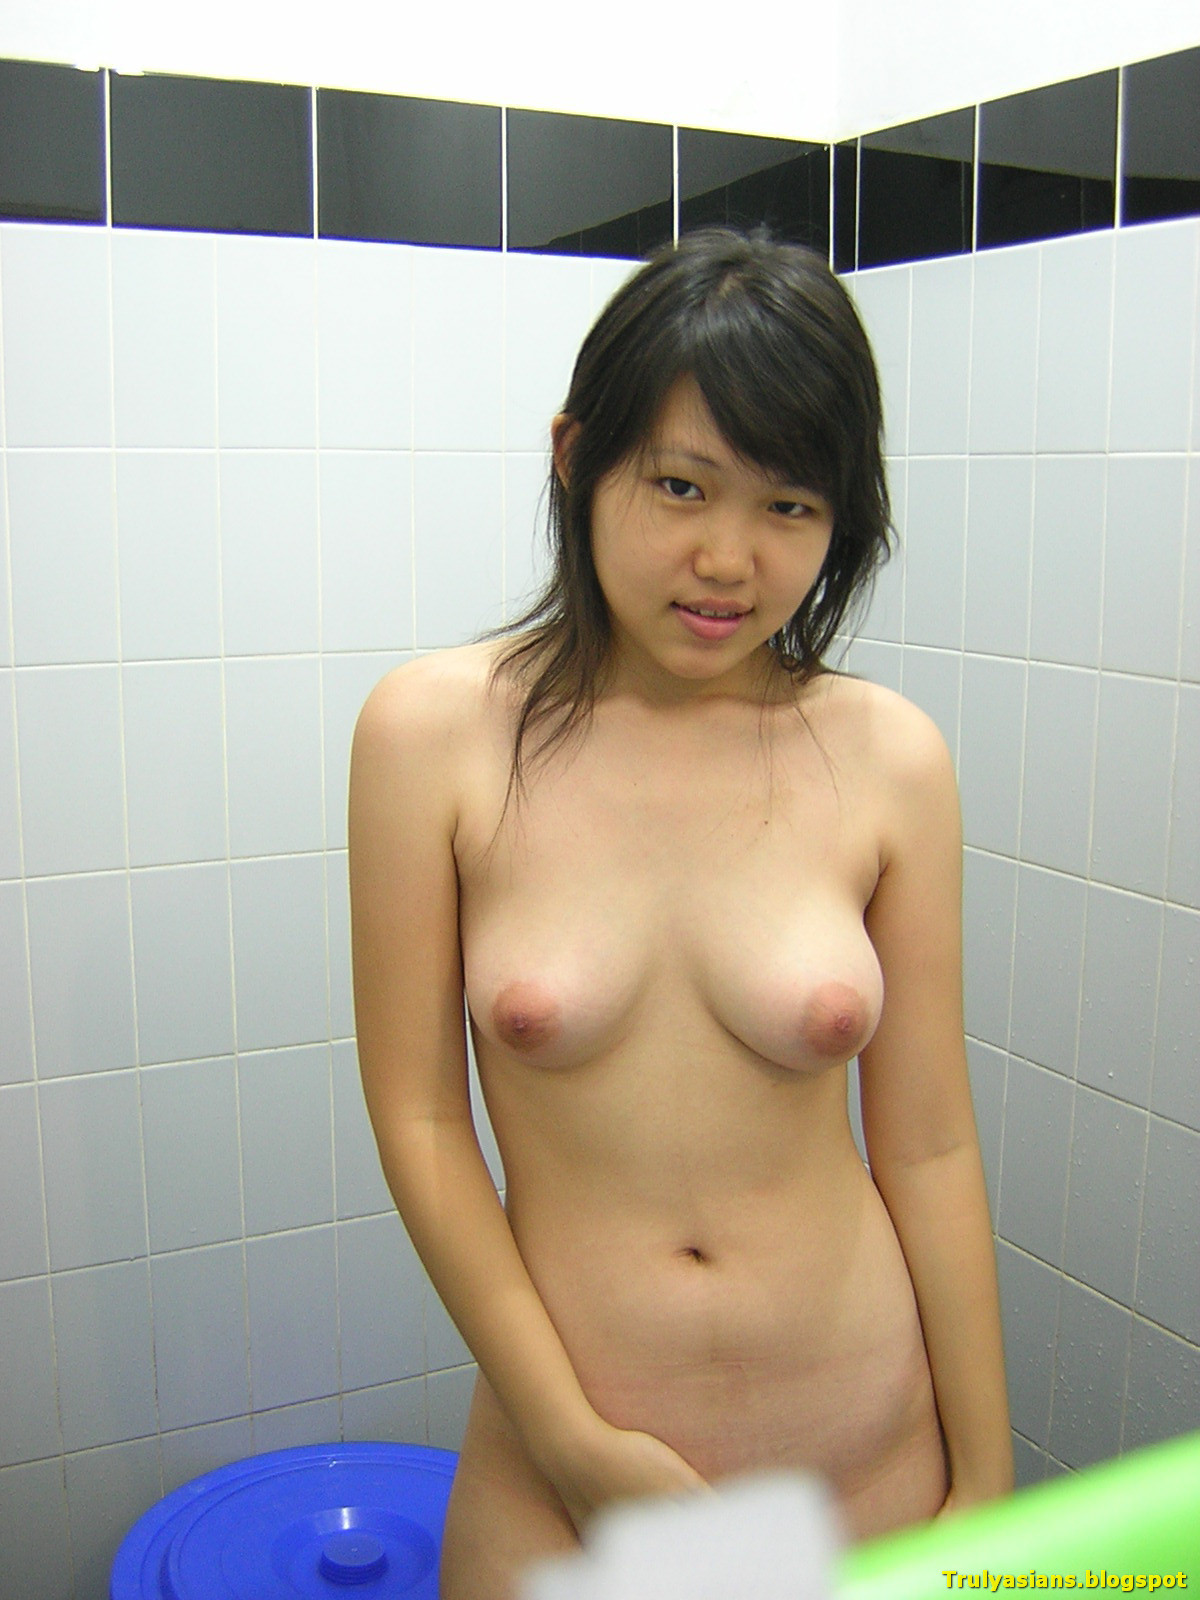 Chines girls naked